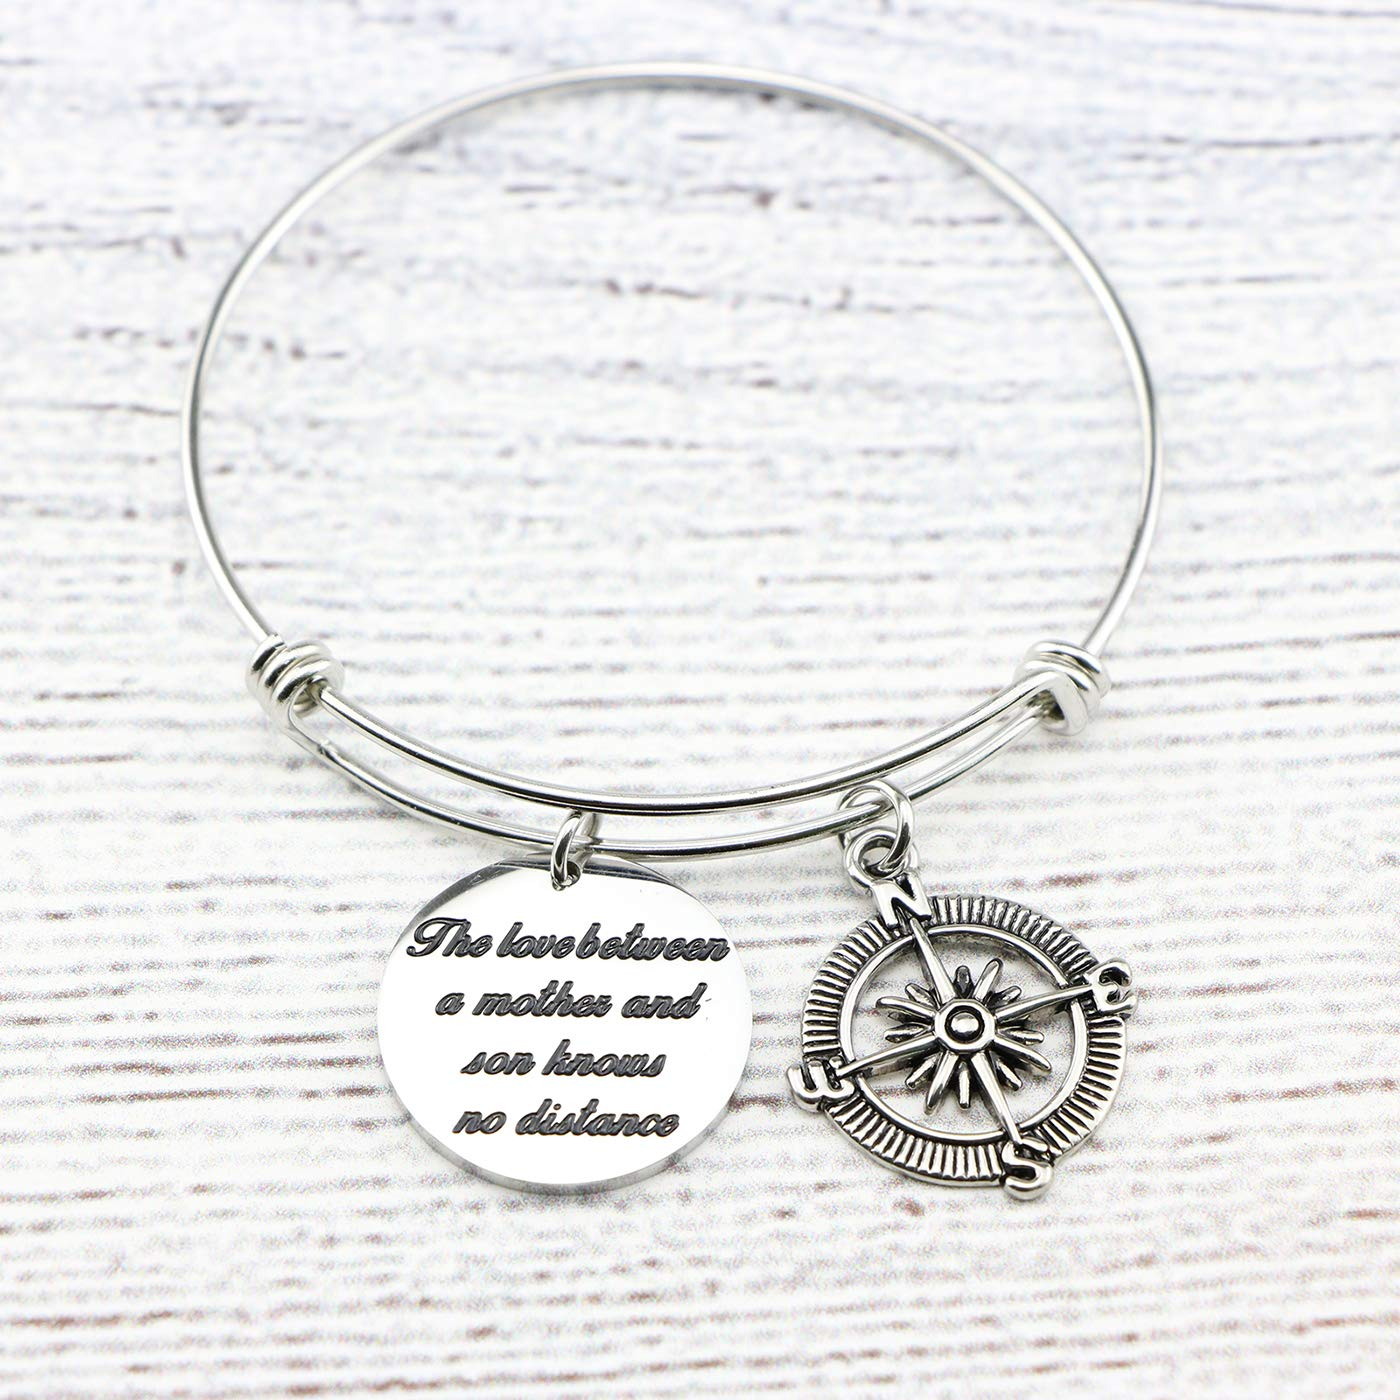 Memgift Gift for Mother Stainless Steel Bracelet The Love Between a Mother and Son Knows No Distance by Memgift (Image #3)